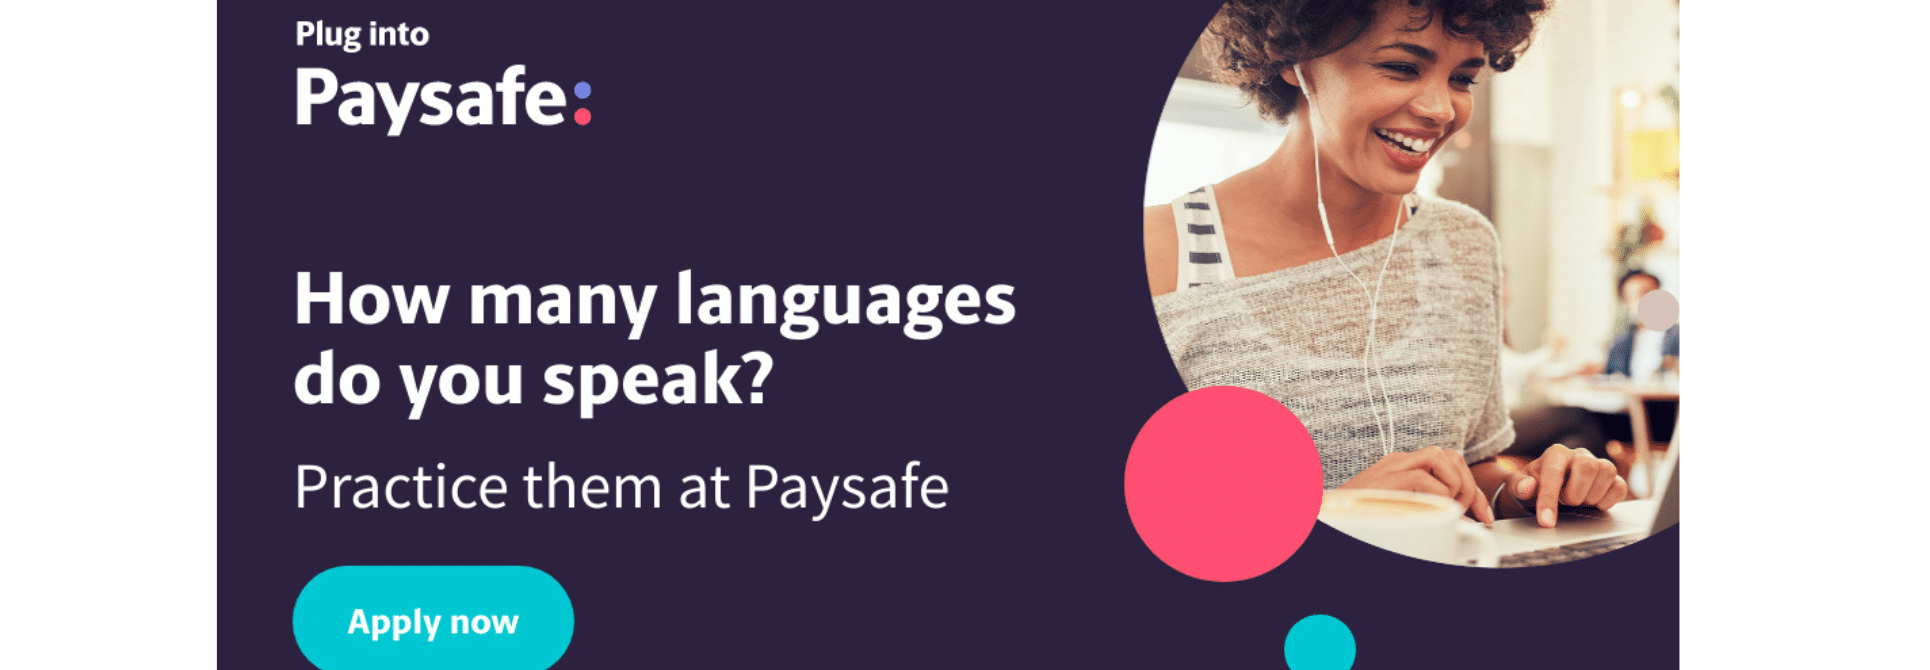 Career at paysafe